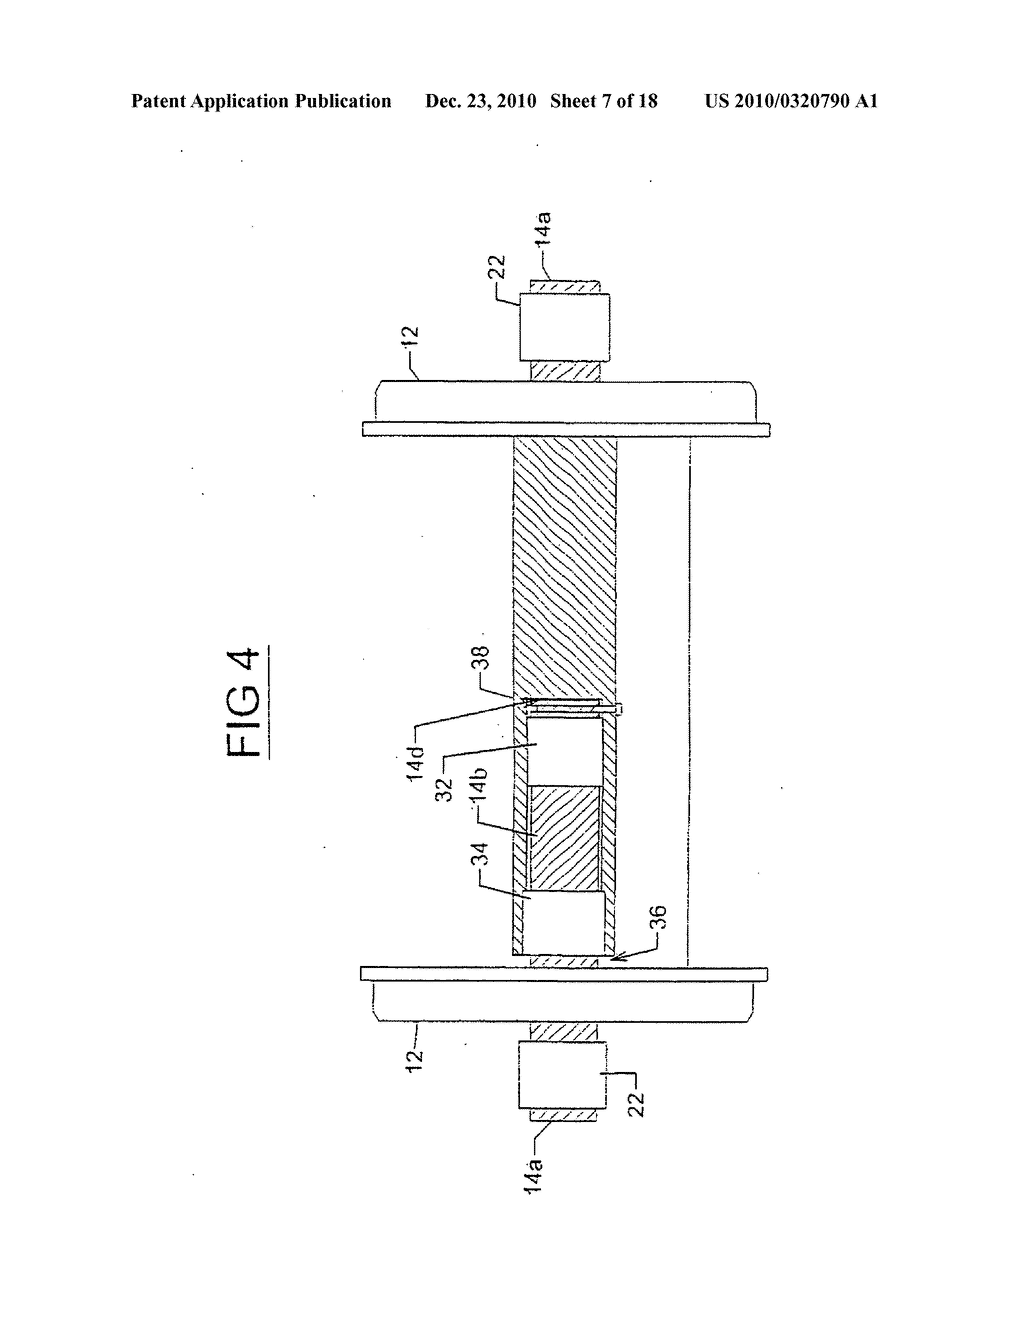 hight resolution of railway car independent axles with axle locking mechanism diagram schematic and image 08